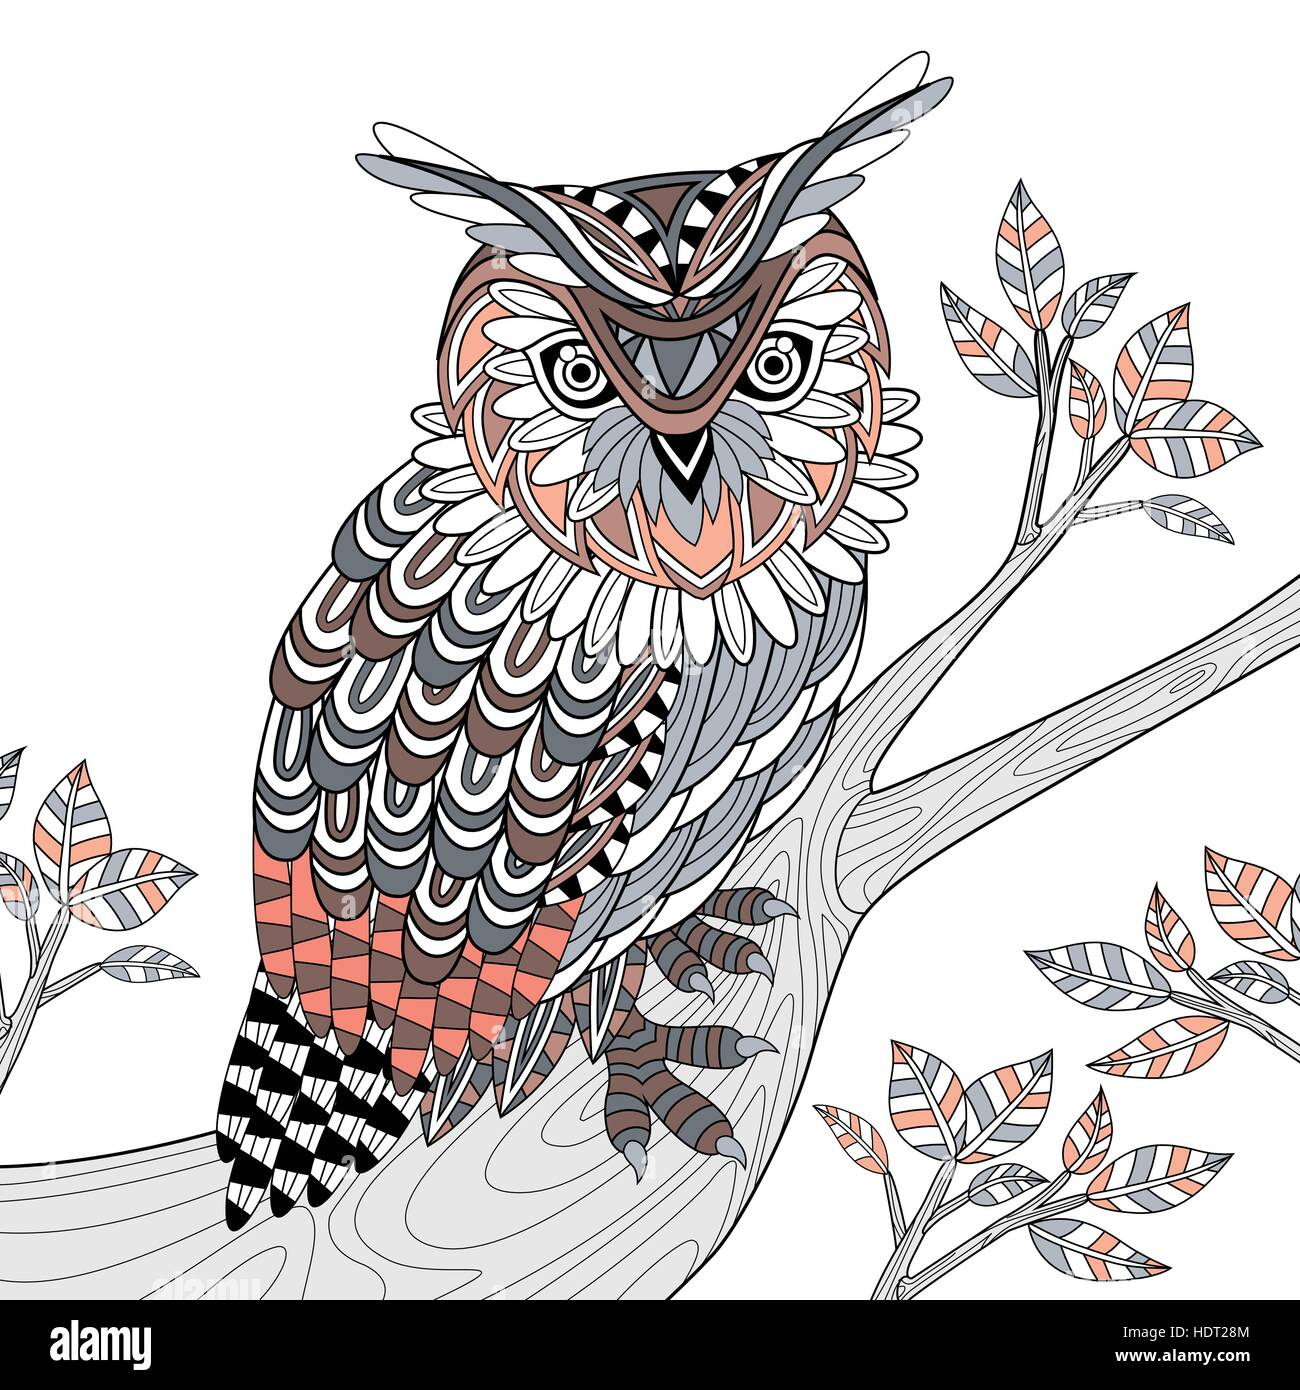 Wise Owl Coloring Page In Exquisite Style Stock Vector Art